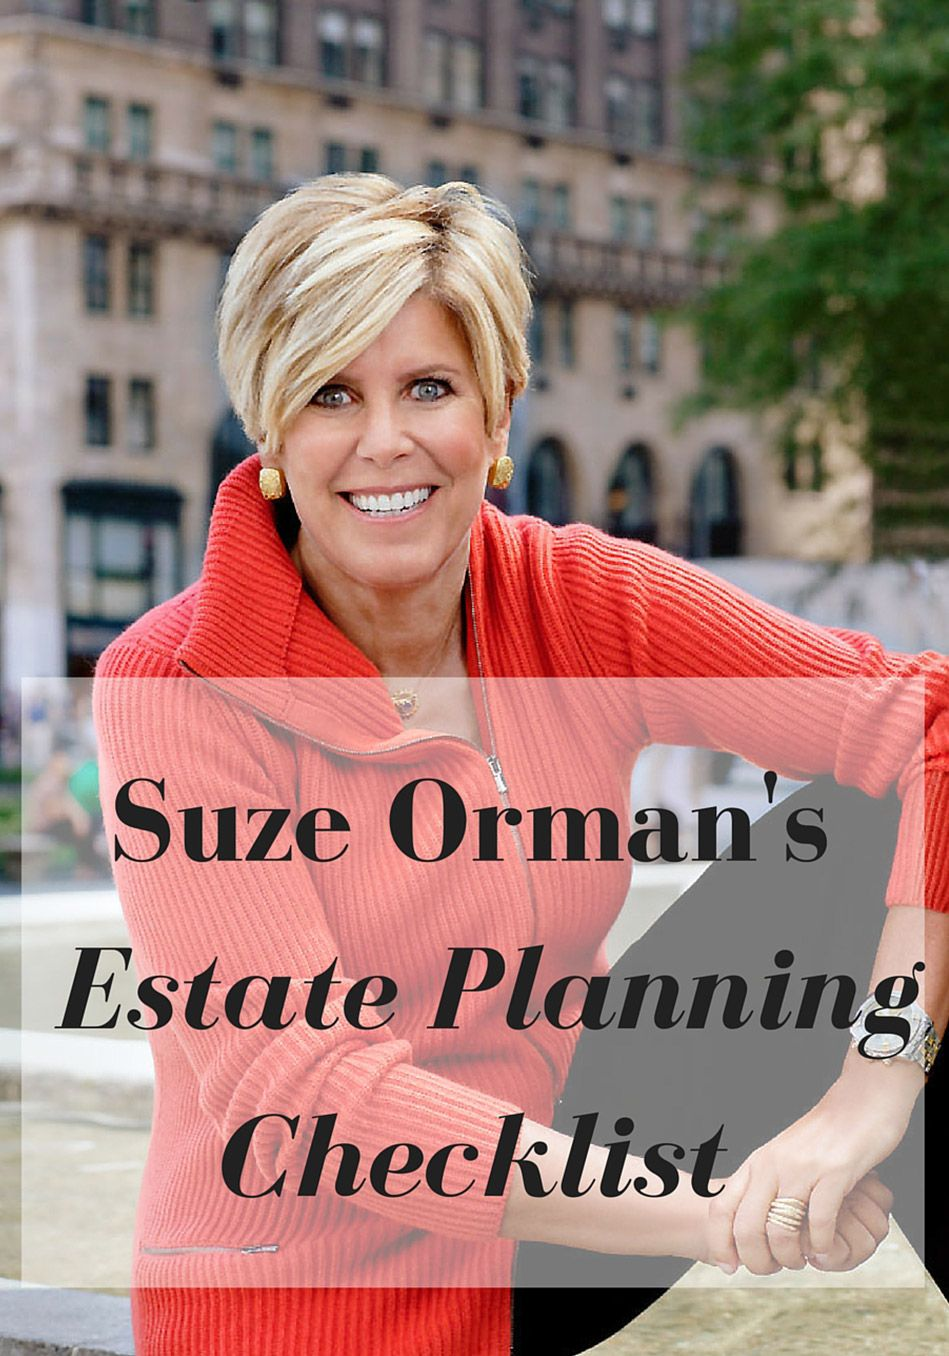 Worksheets Suze Orman Worksheets suze ormans estate planning checklist money career pinterest pin it how to write a will and make sure your assets pass loved ones exactly